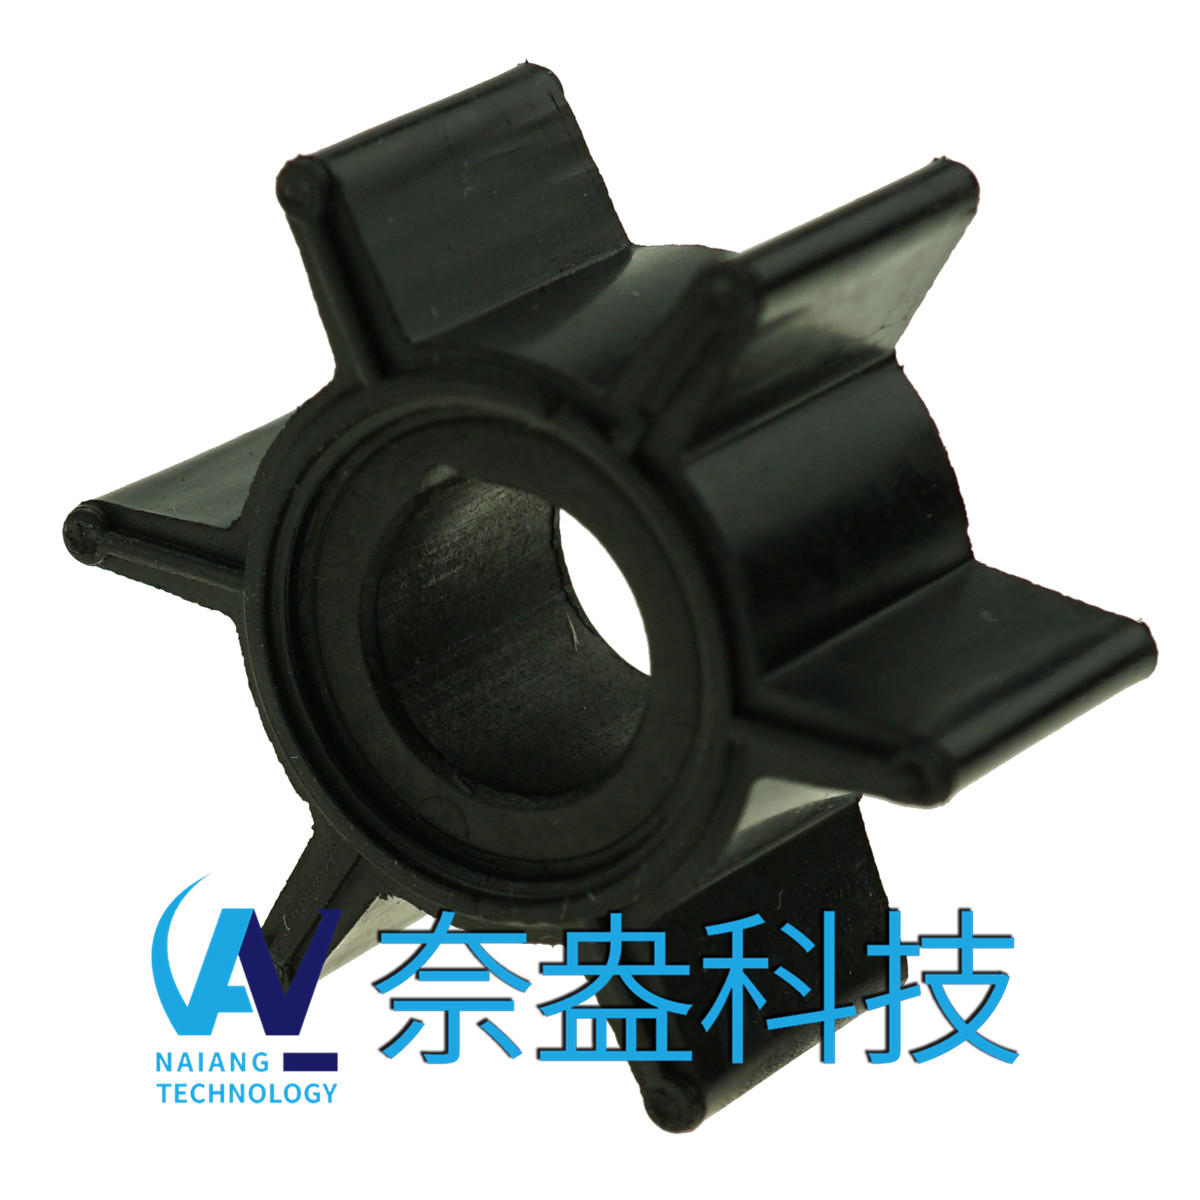 水星舷外機橡膠葉輪3.3-6hp Mercury Impeller 47-16154-